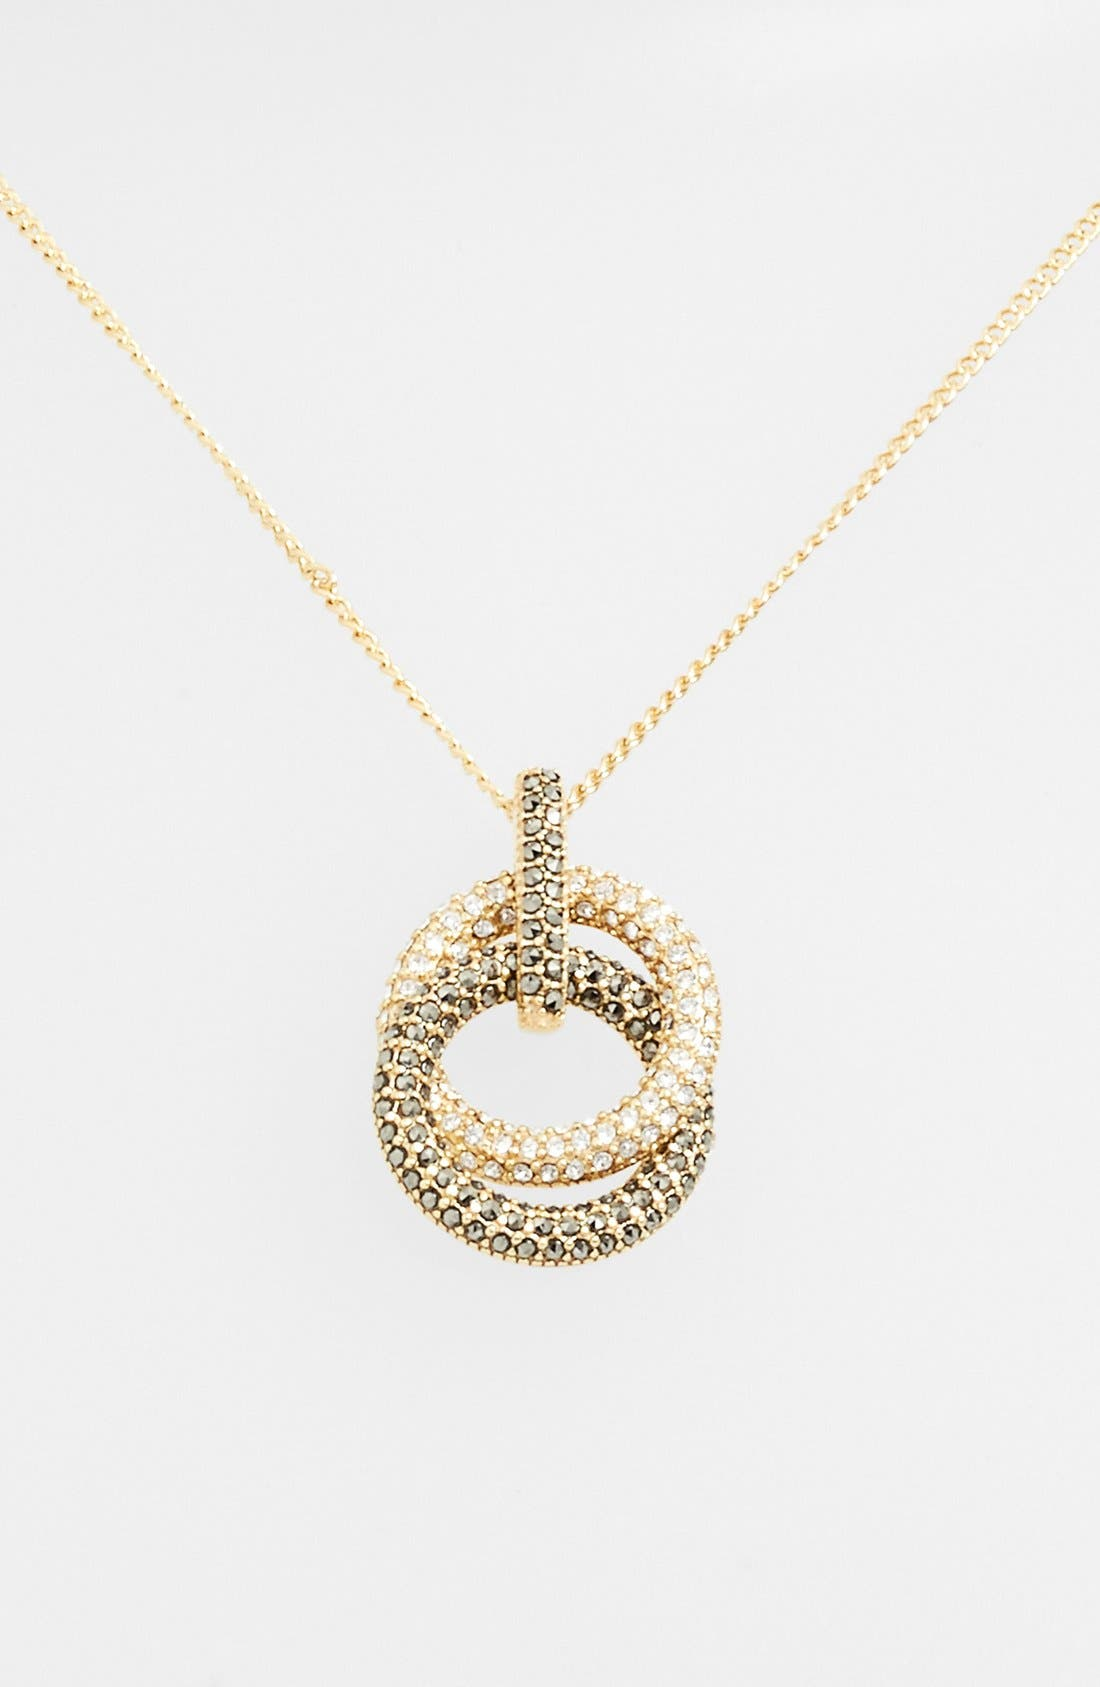 JUDITH JACK Pavé Double Circle Pendant Necklace